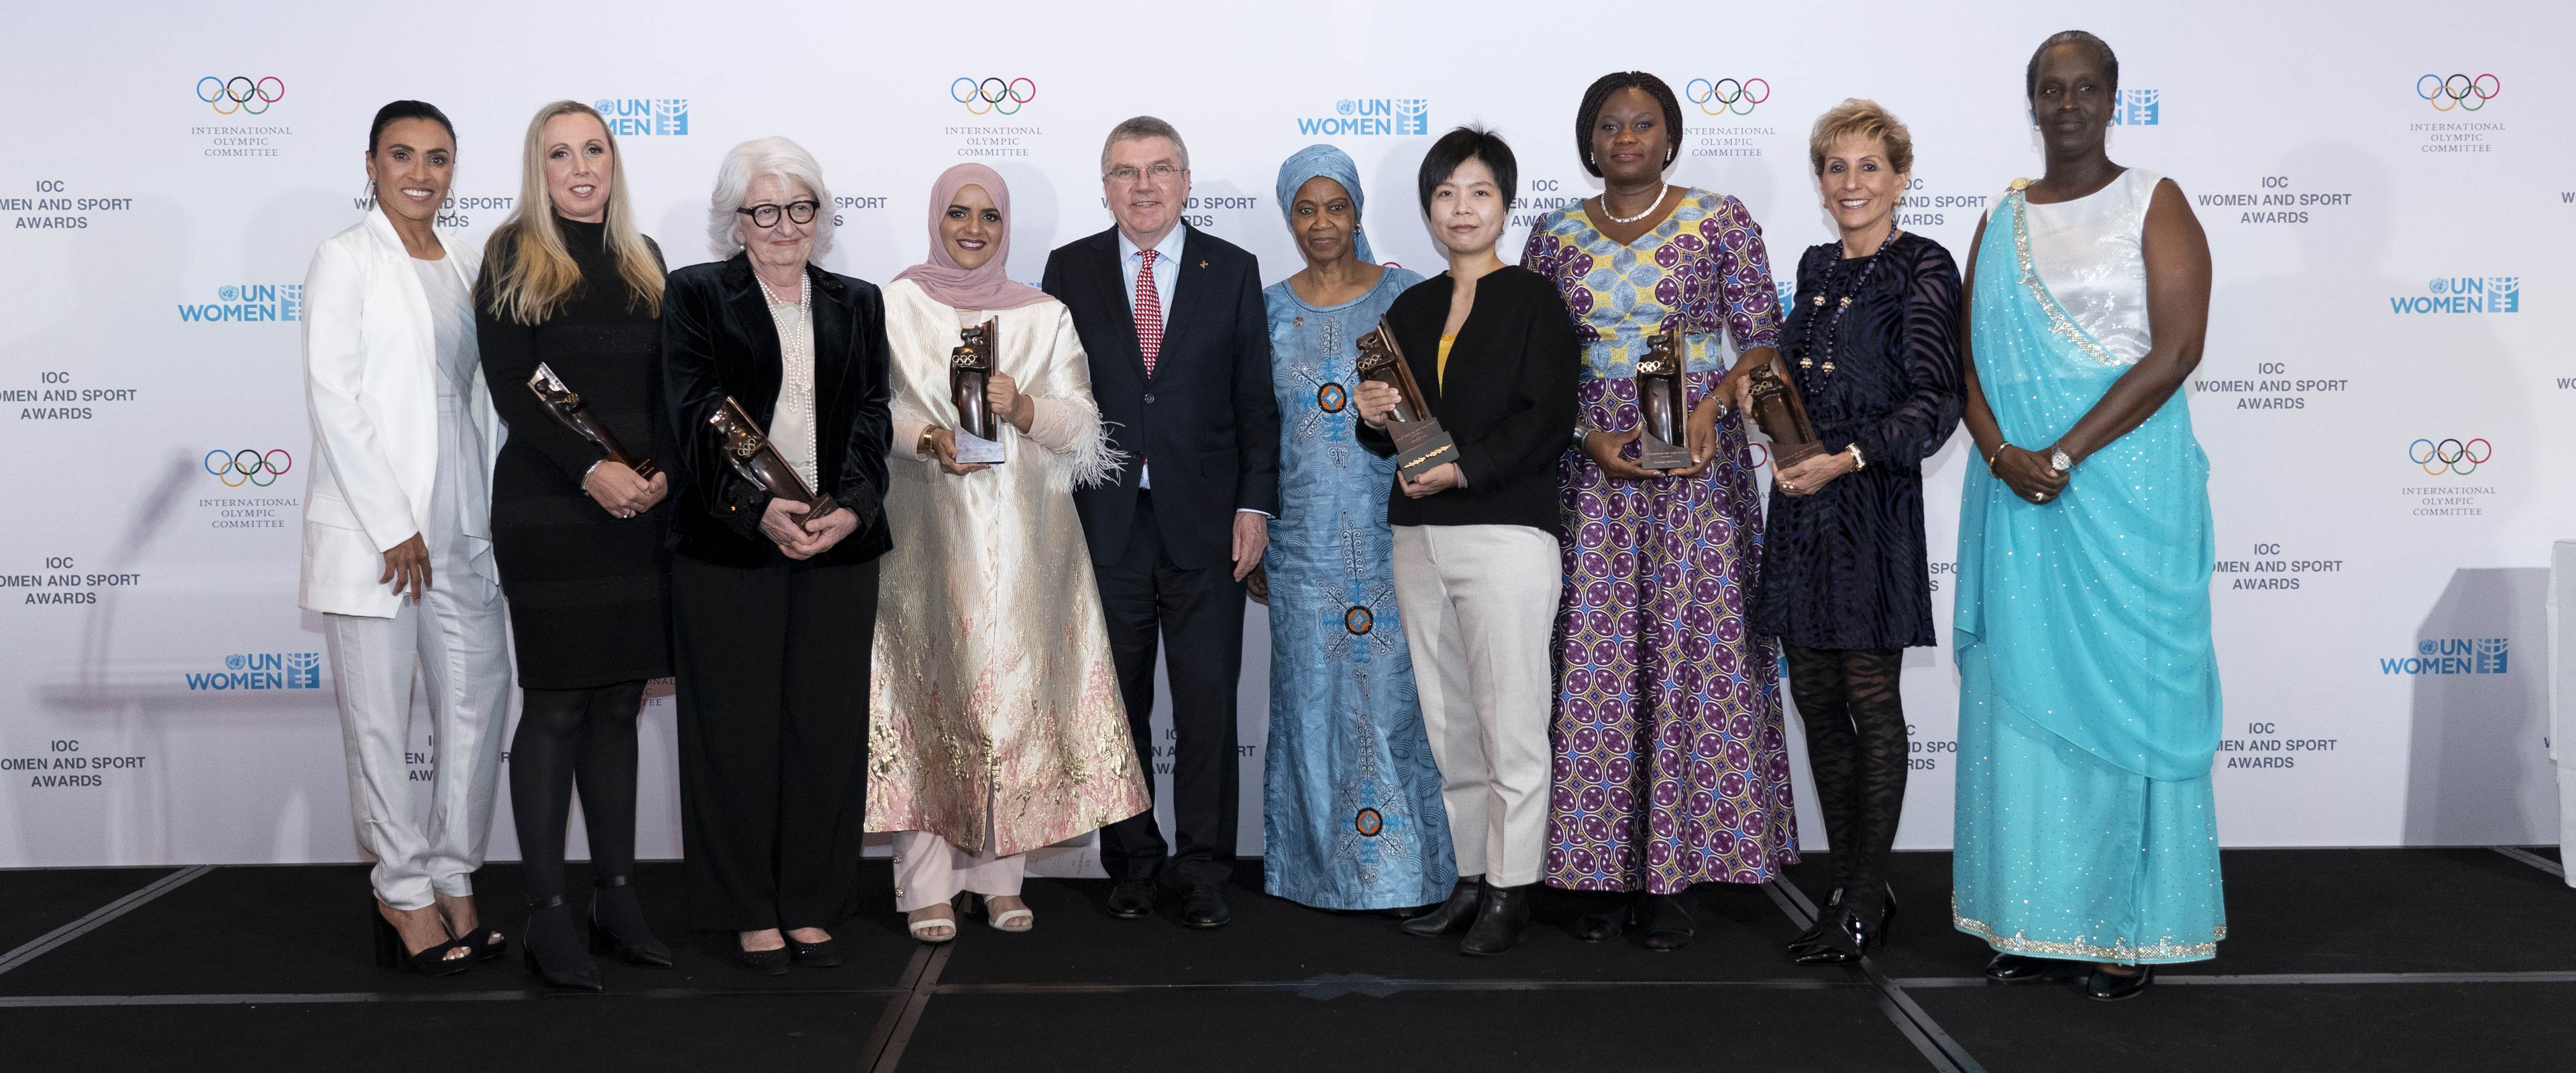 IOC AWARDS 2019